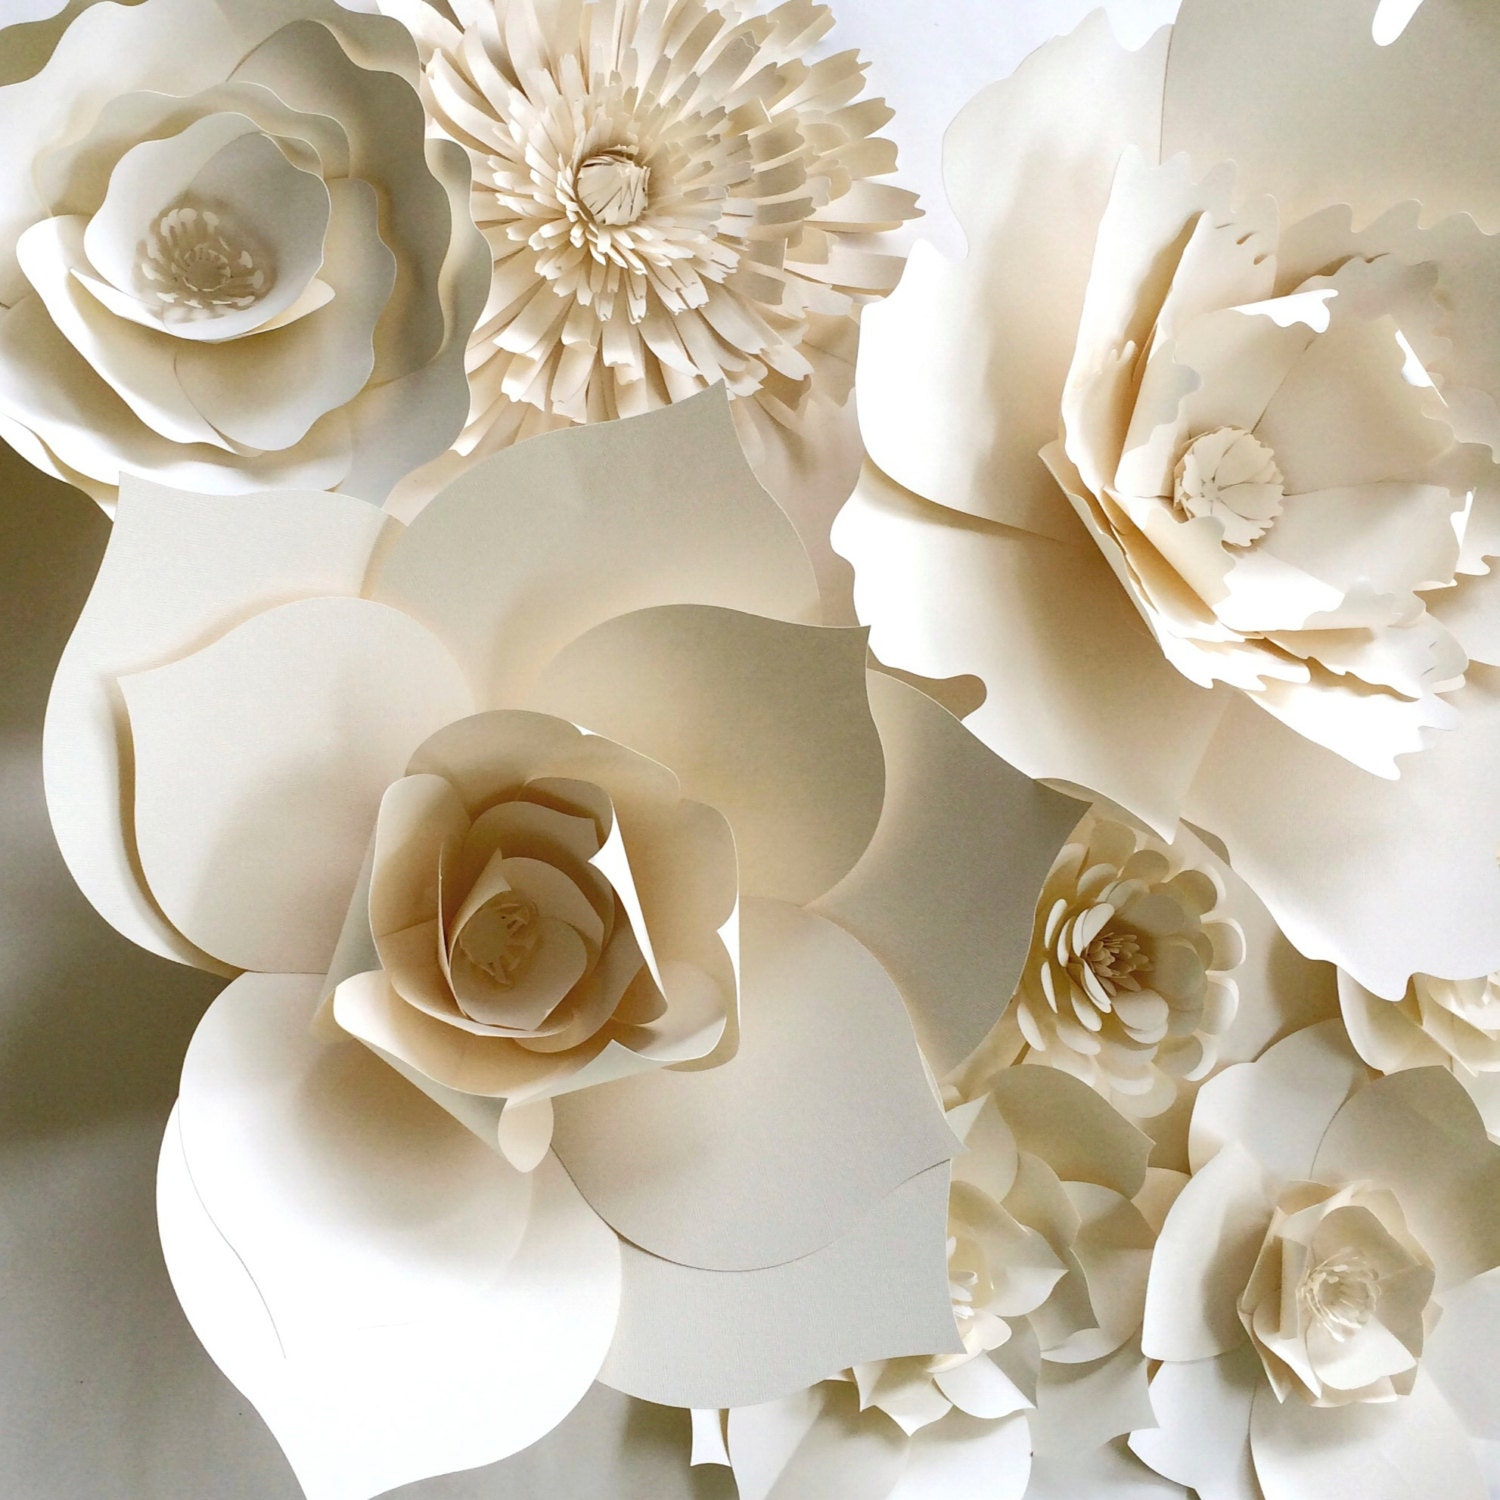 Large Flower Wall Decor : Paper flower wall decor large